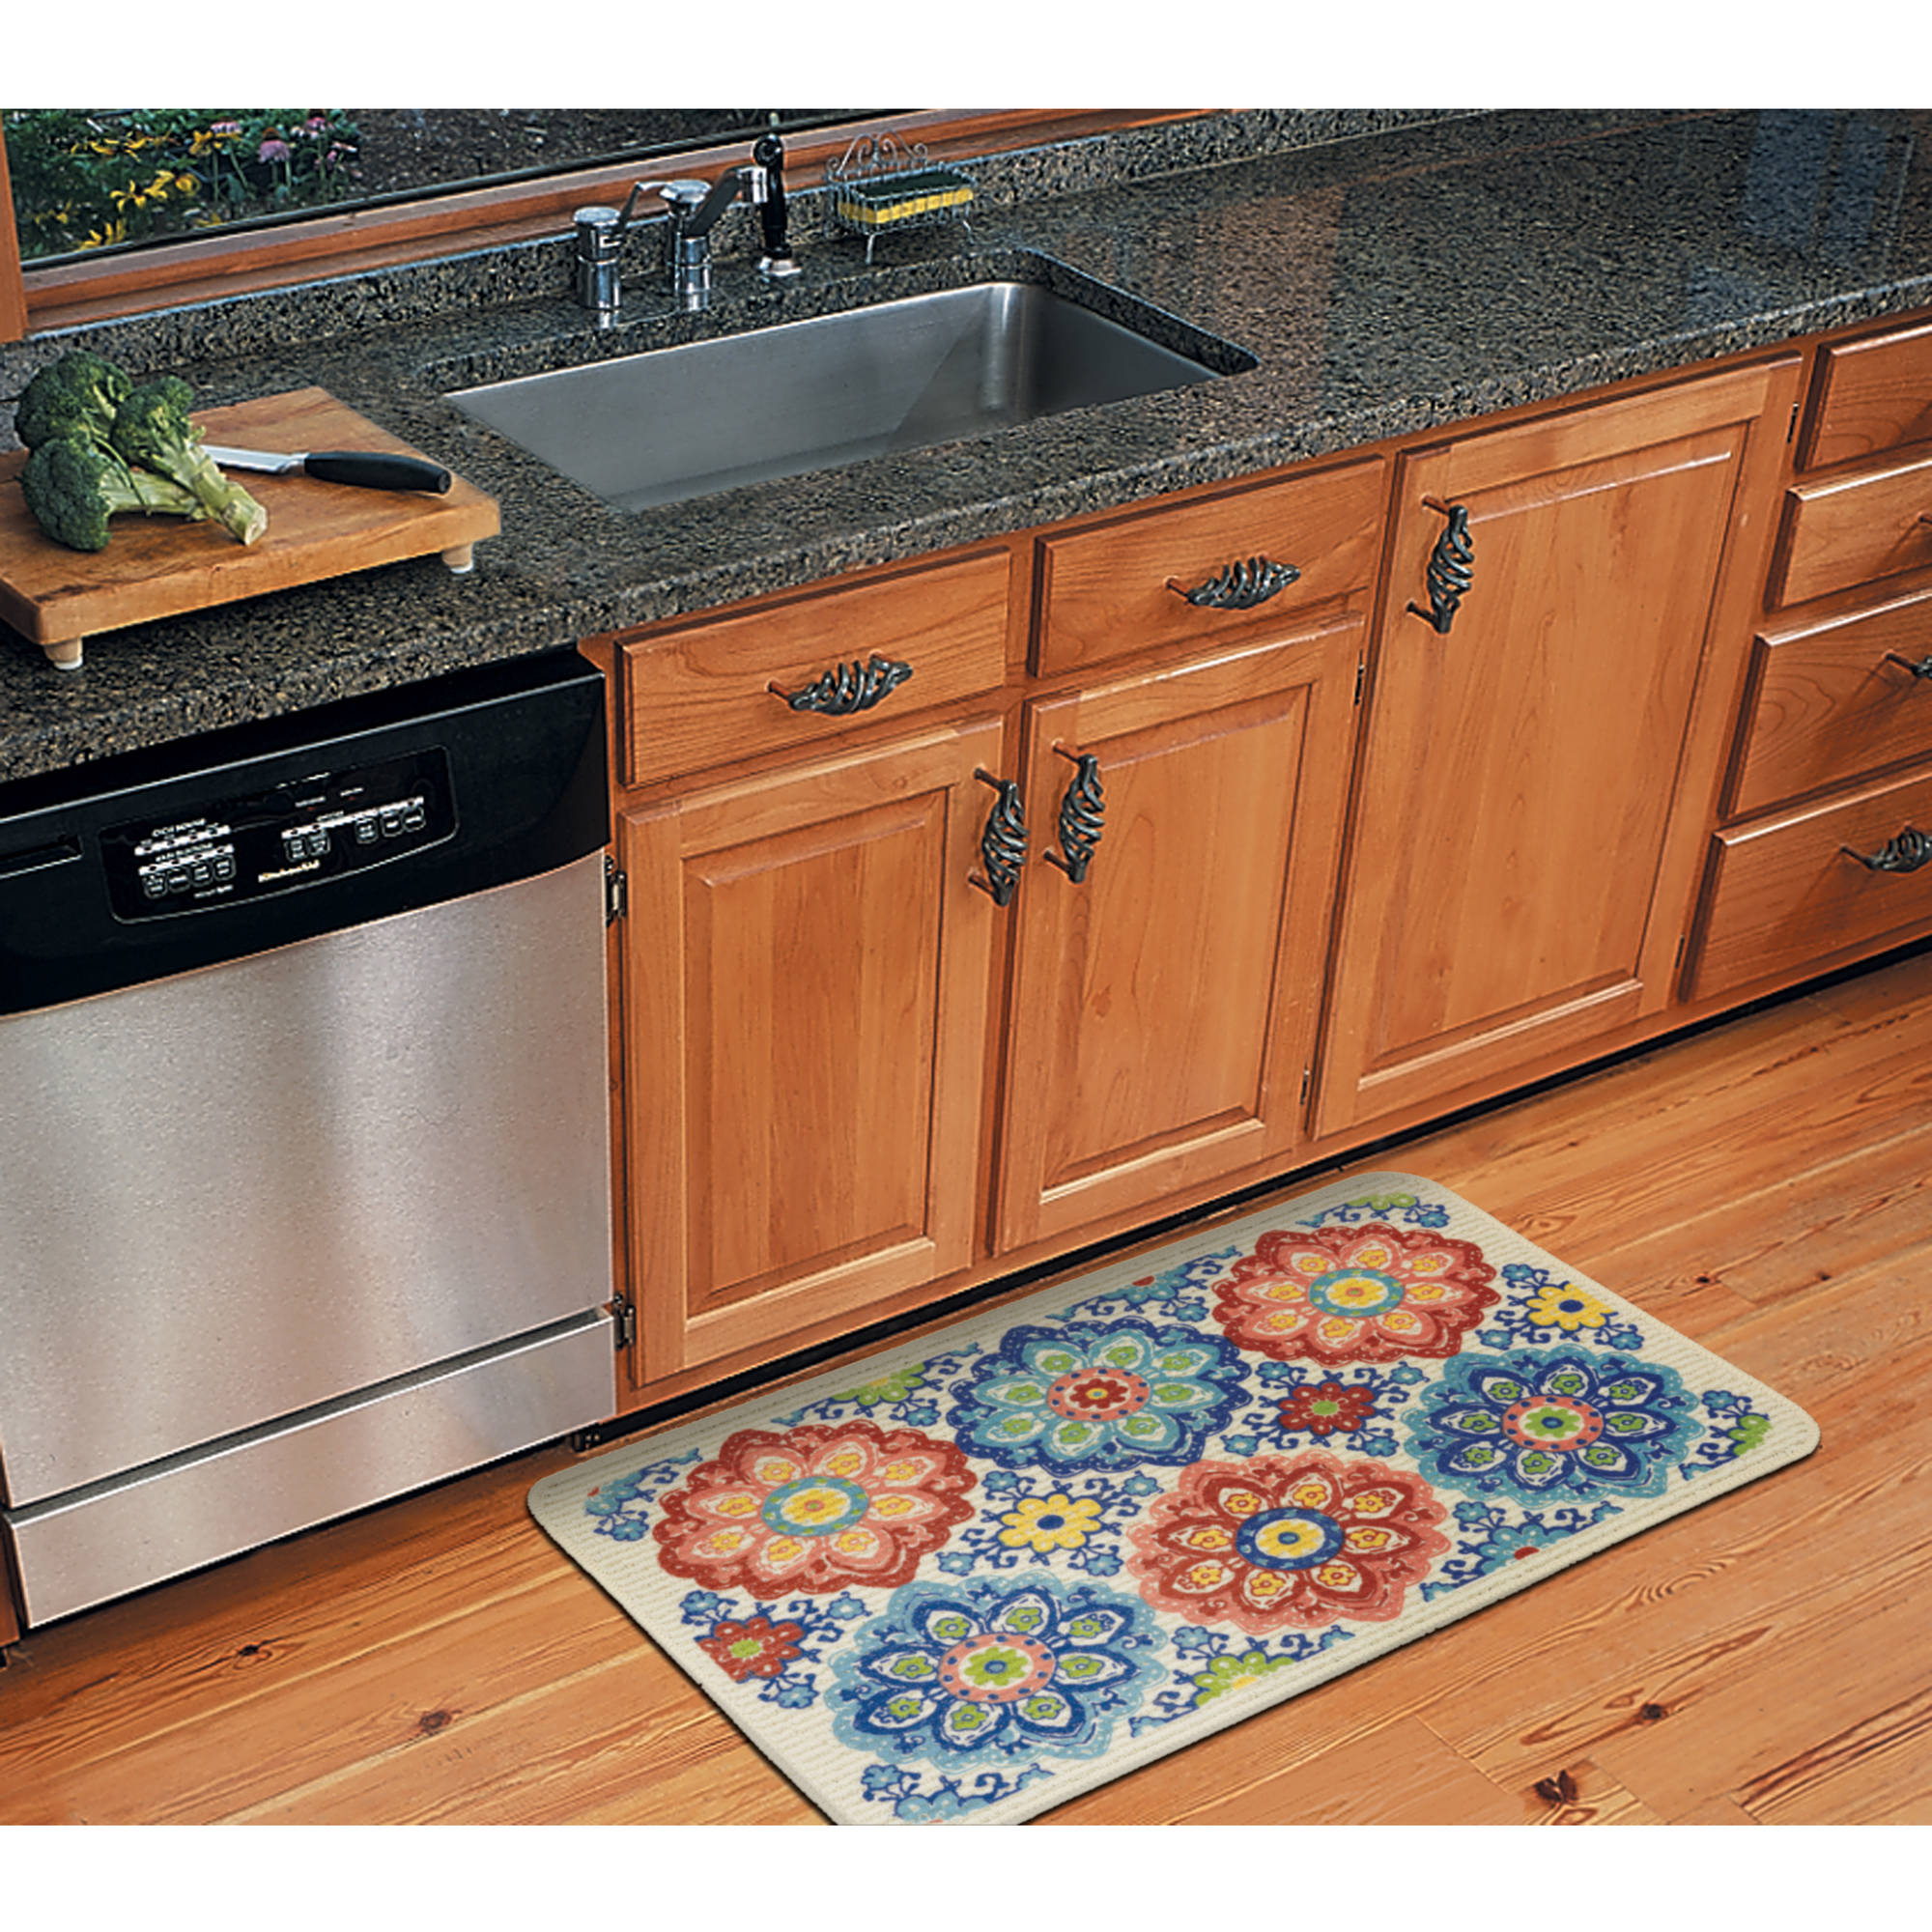 Mainstays New Medallion Kitchen Rug